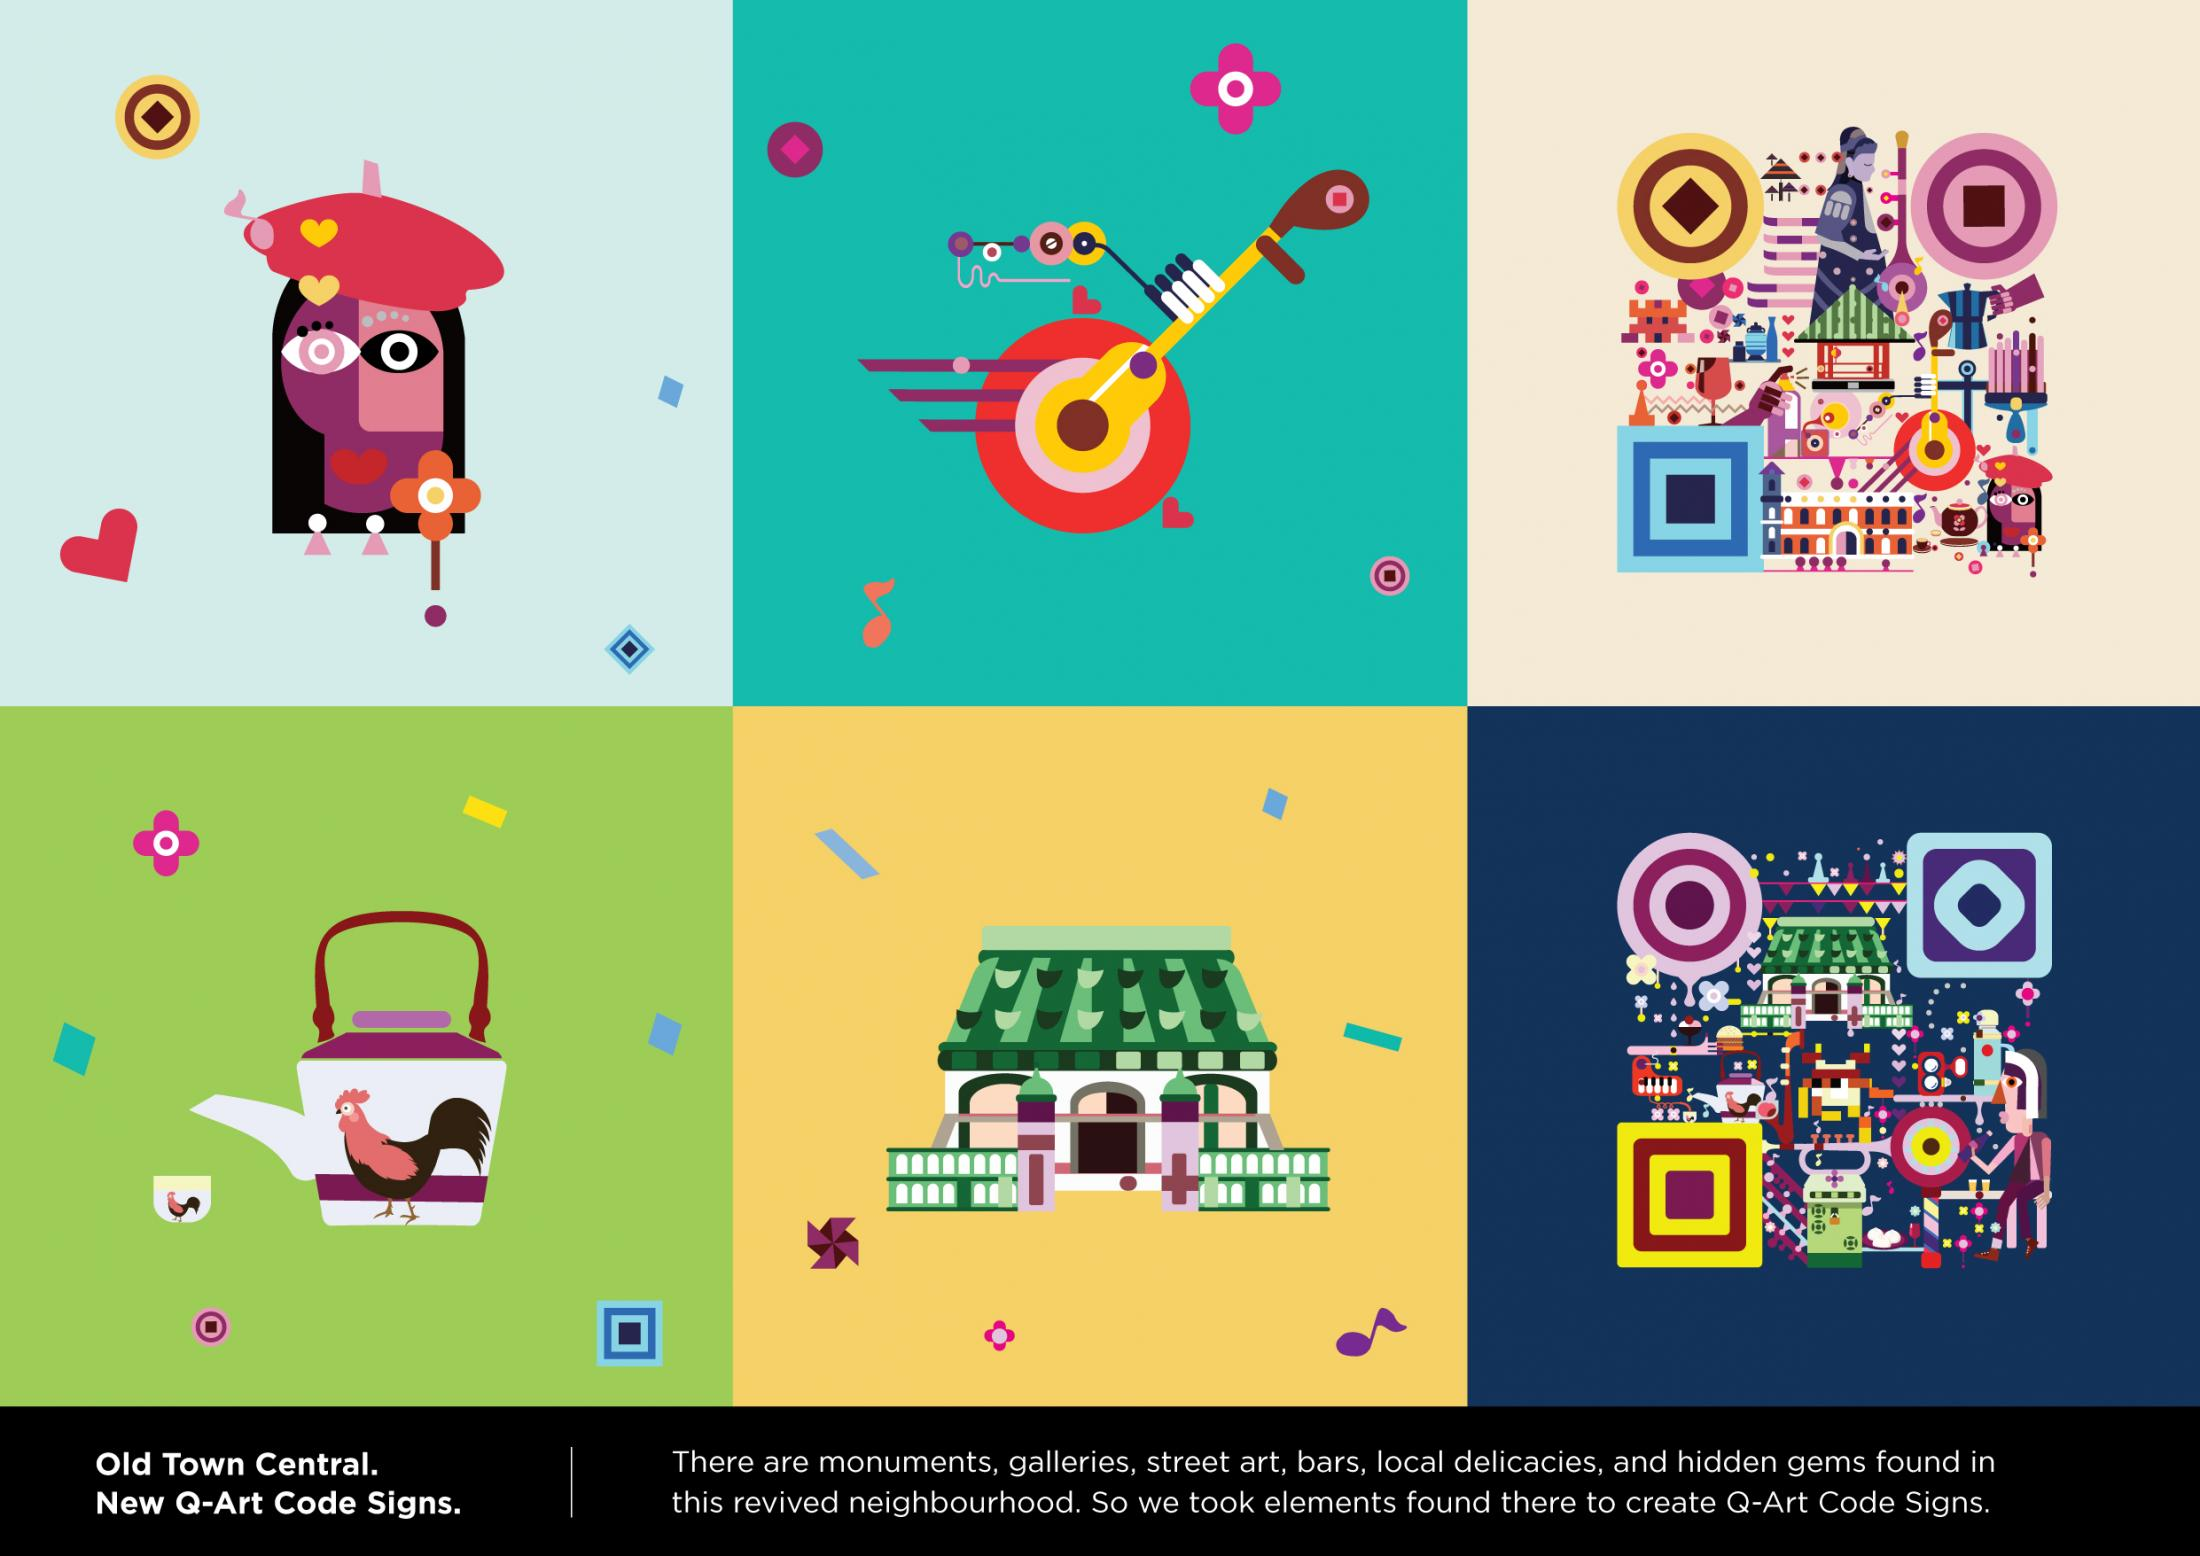 Hong Kong Tourism Board Design Ad - The art of introducing Old Town Central to the world